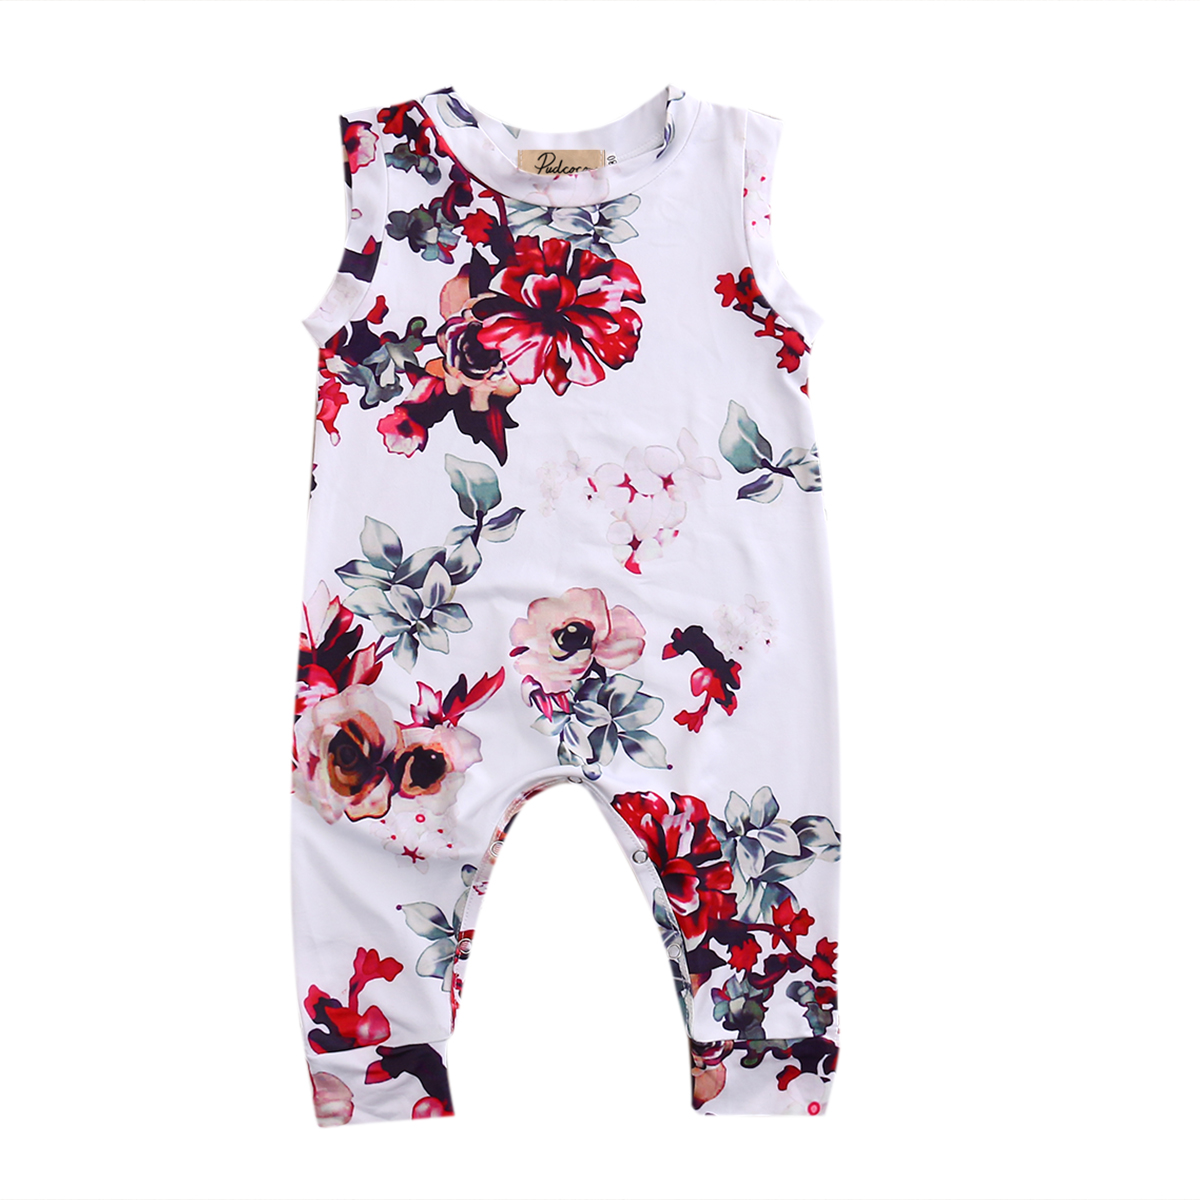 Kid Newborn Summer Clothes Baby Boy Girl Sleeveless Romper Floral Lovely Casual Romper Jumpsuit Playsuit Outfits